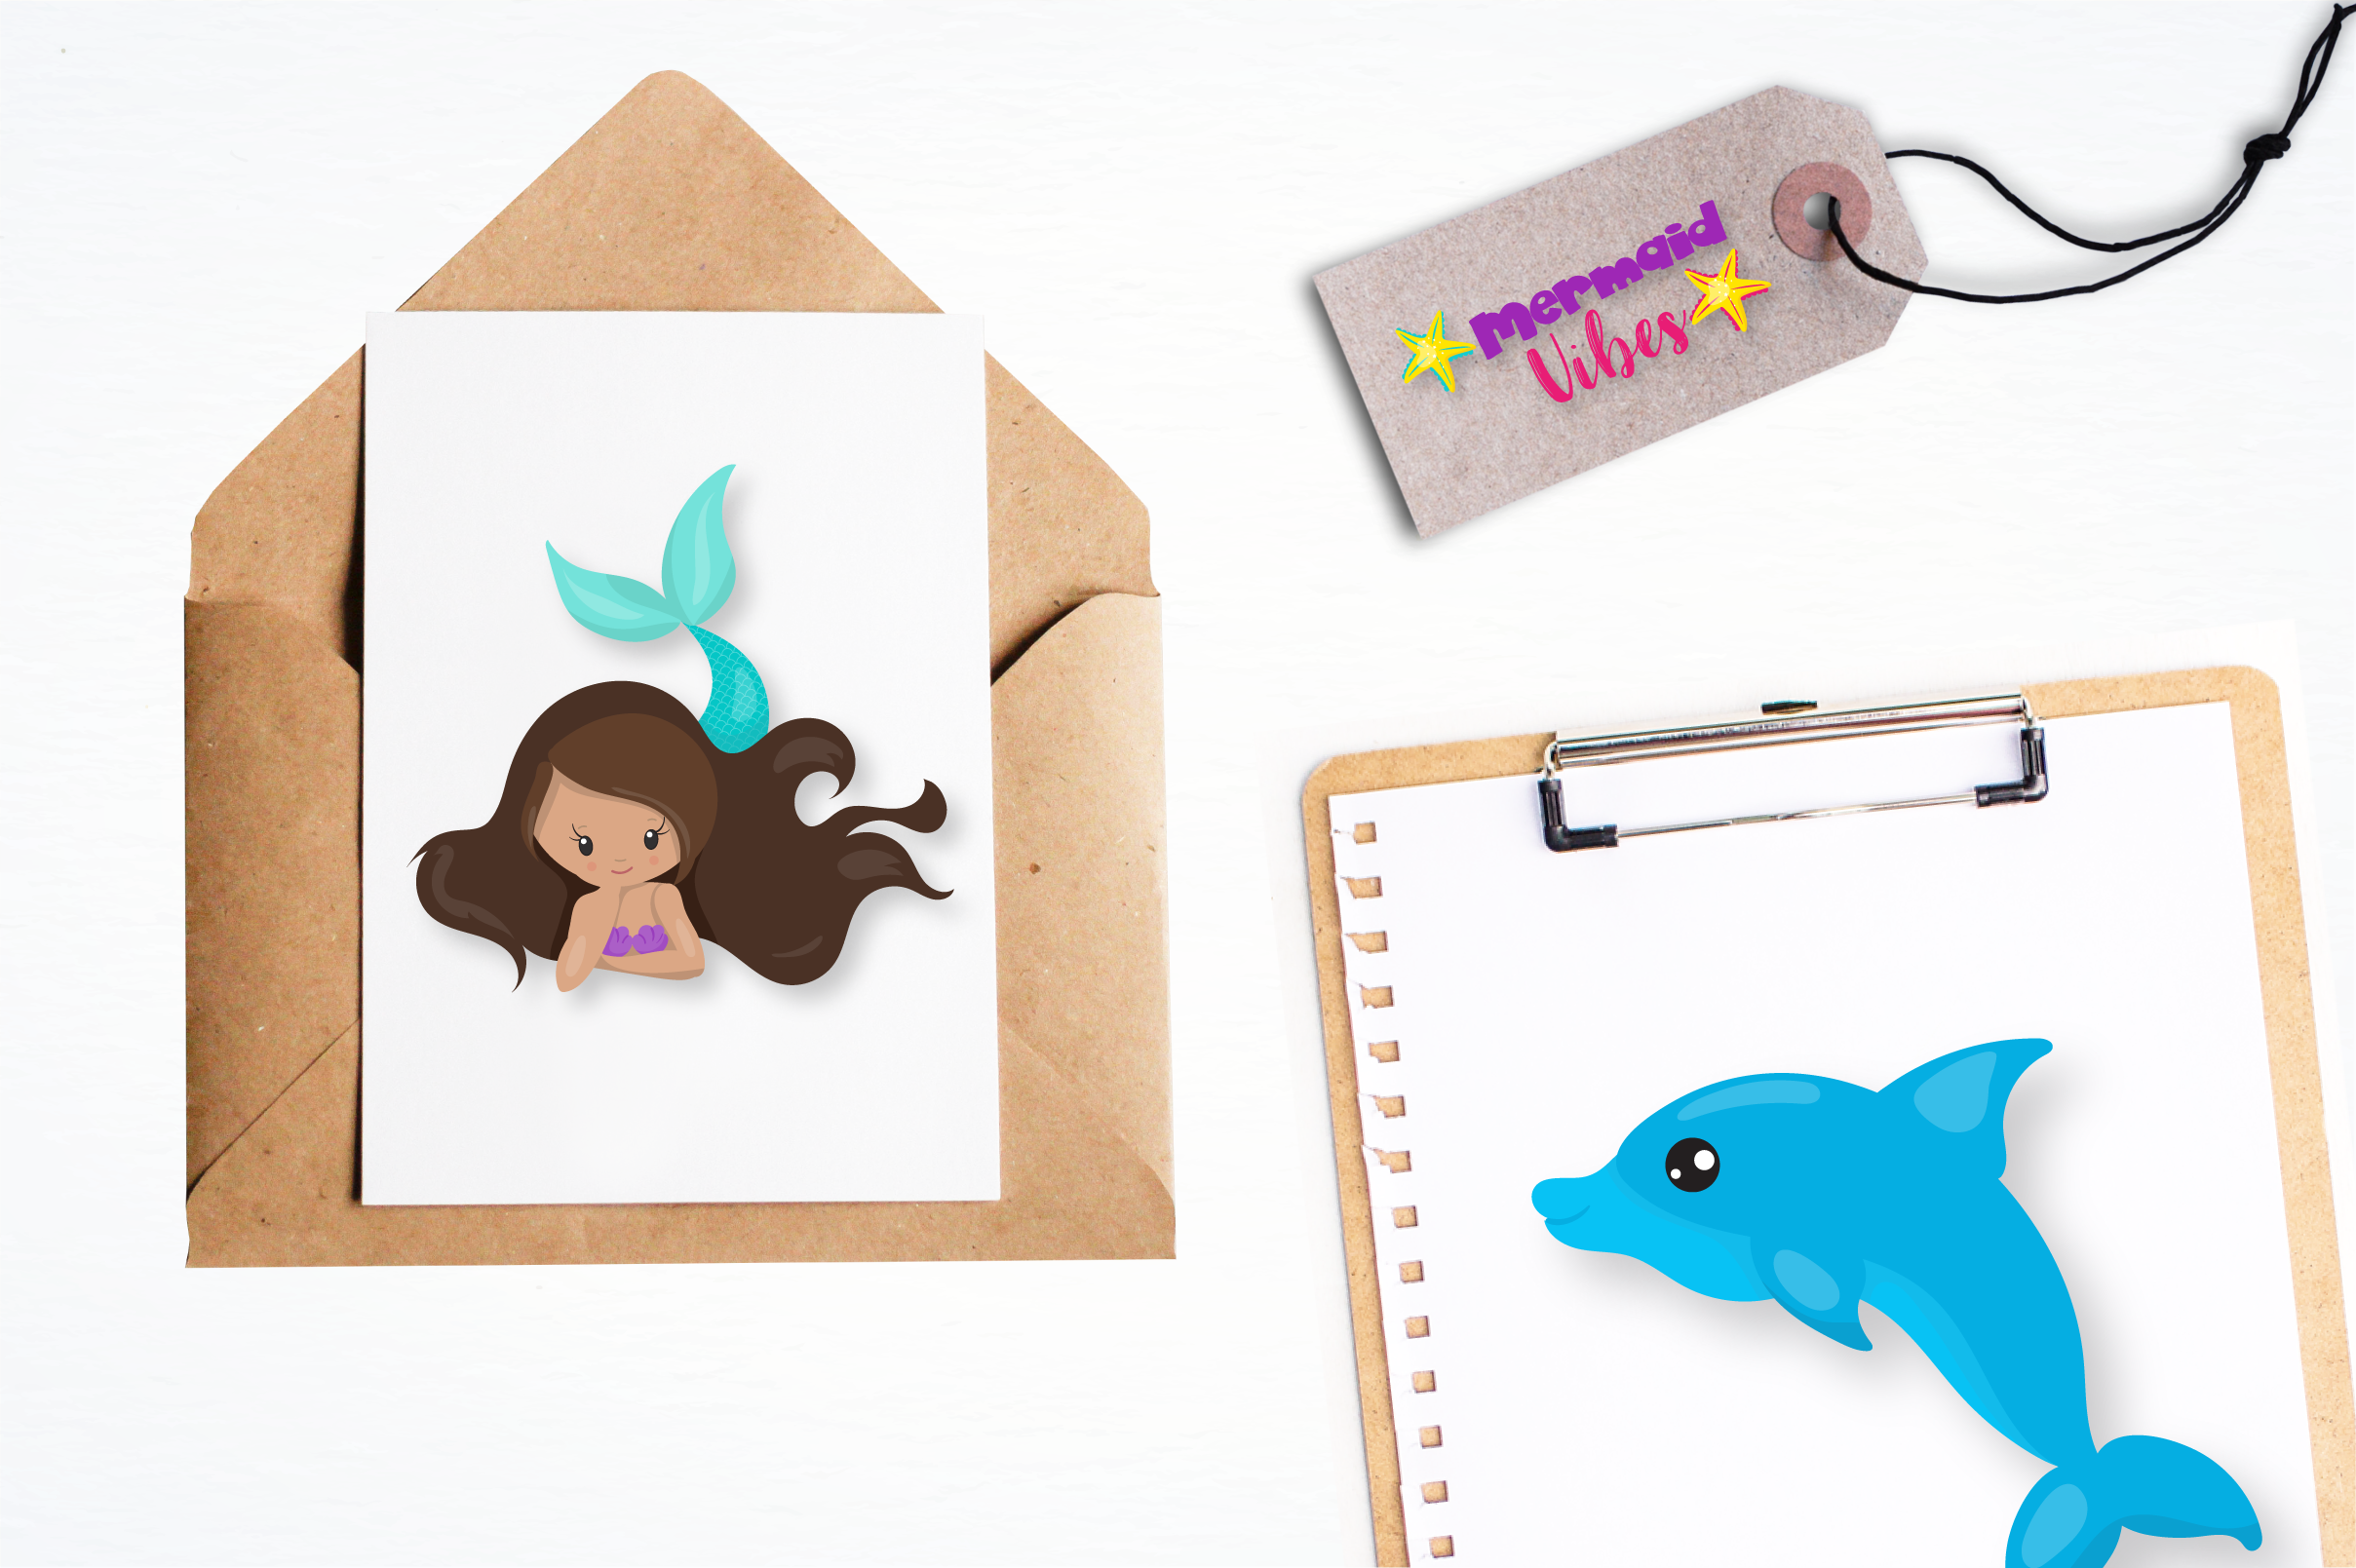 mermaid vibes graphics and illustrations example image 4